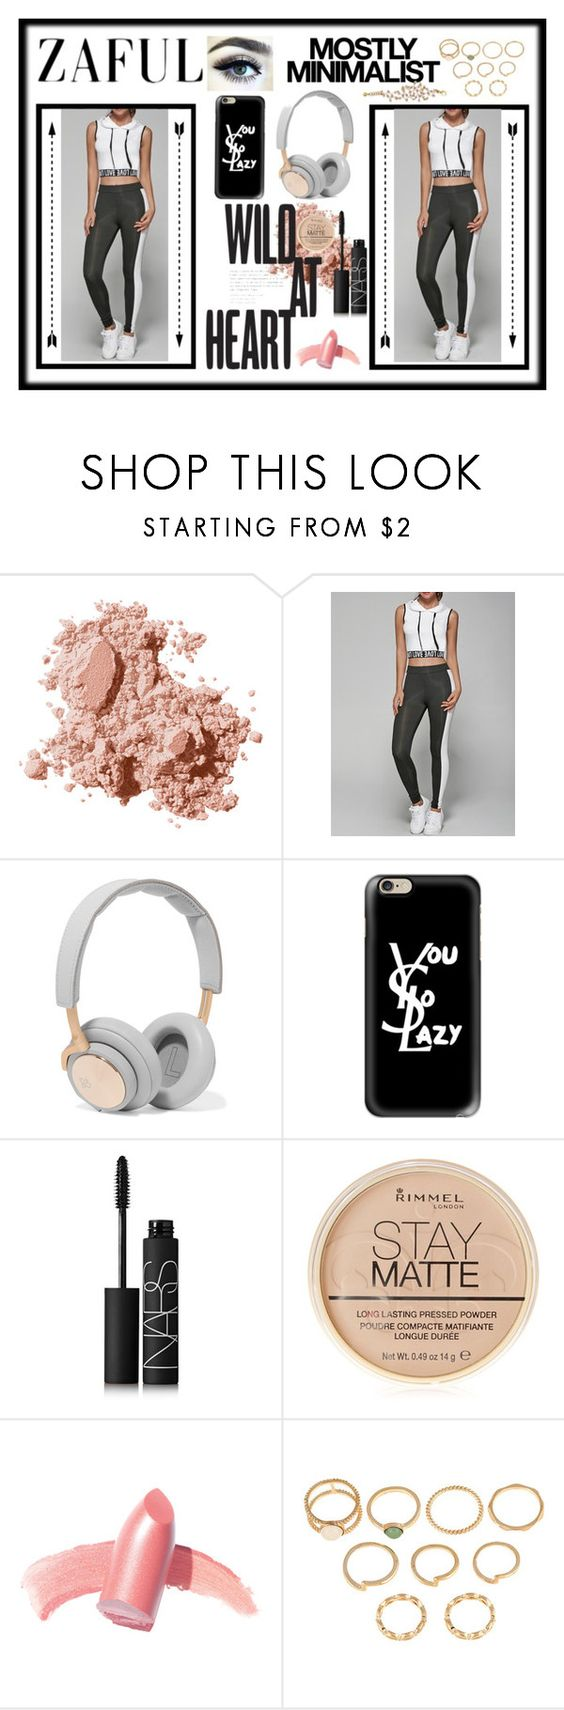 """Mostly Minilist"" by rhiannonpsayer ❤ liked on Polyvore featuring Bobbi Brown Cosmetics, B&O Play, Casetify, NARS Cosmetics, Rimmel, Elizabeth Arden, Serfontaine and Lulu Frost"